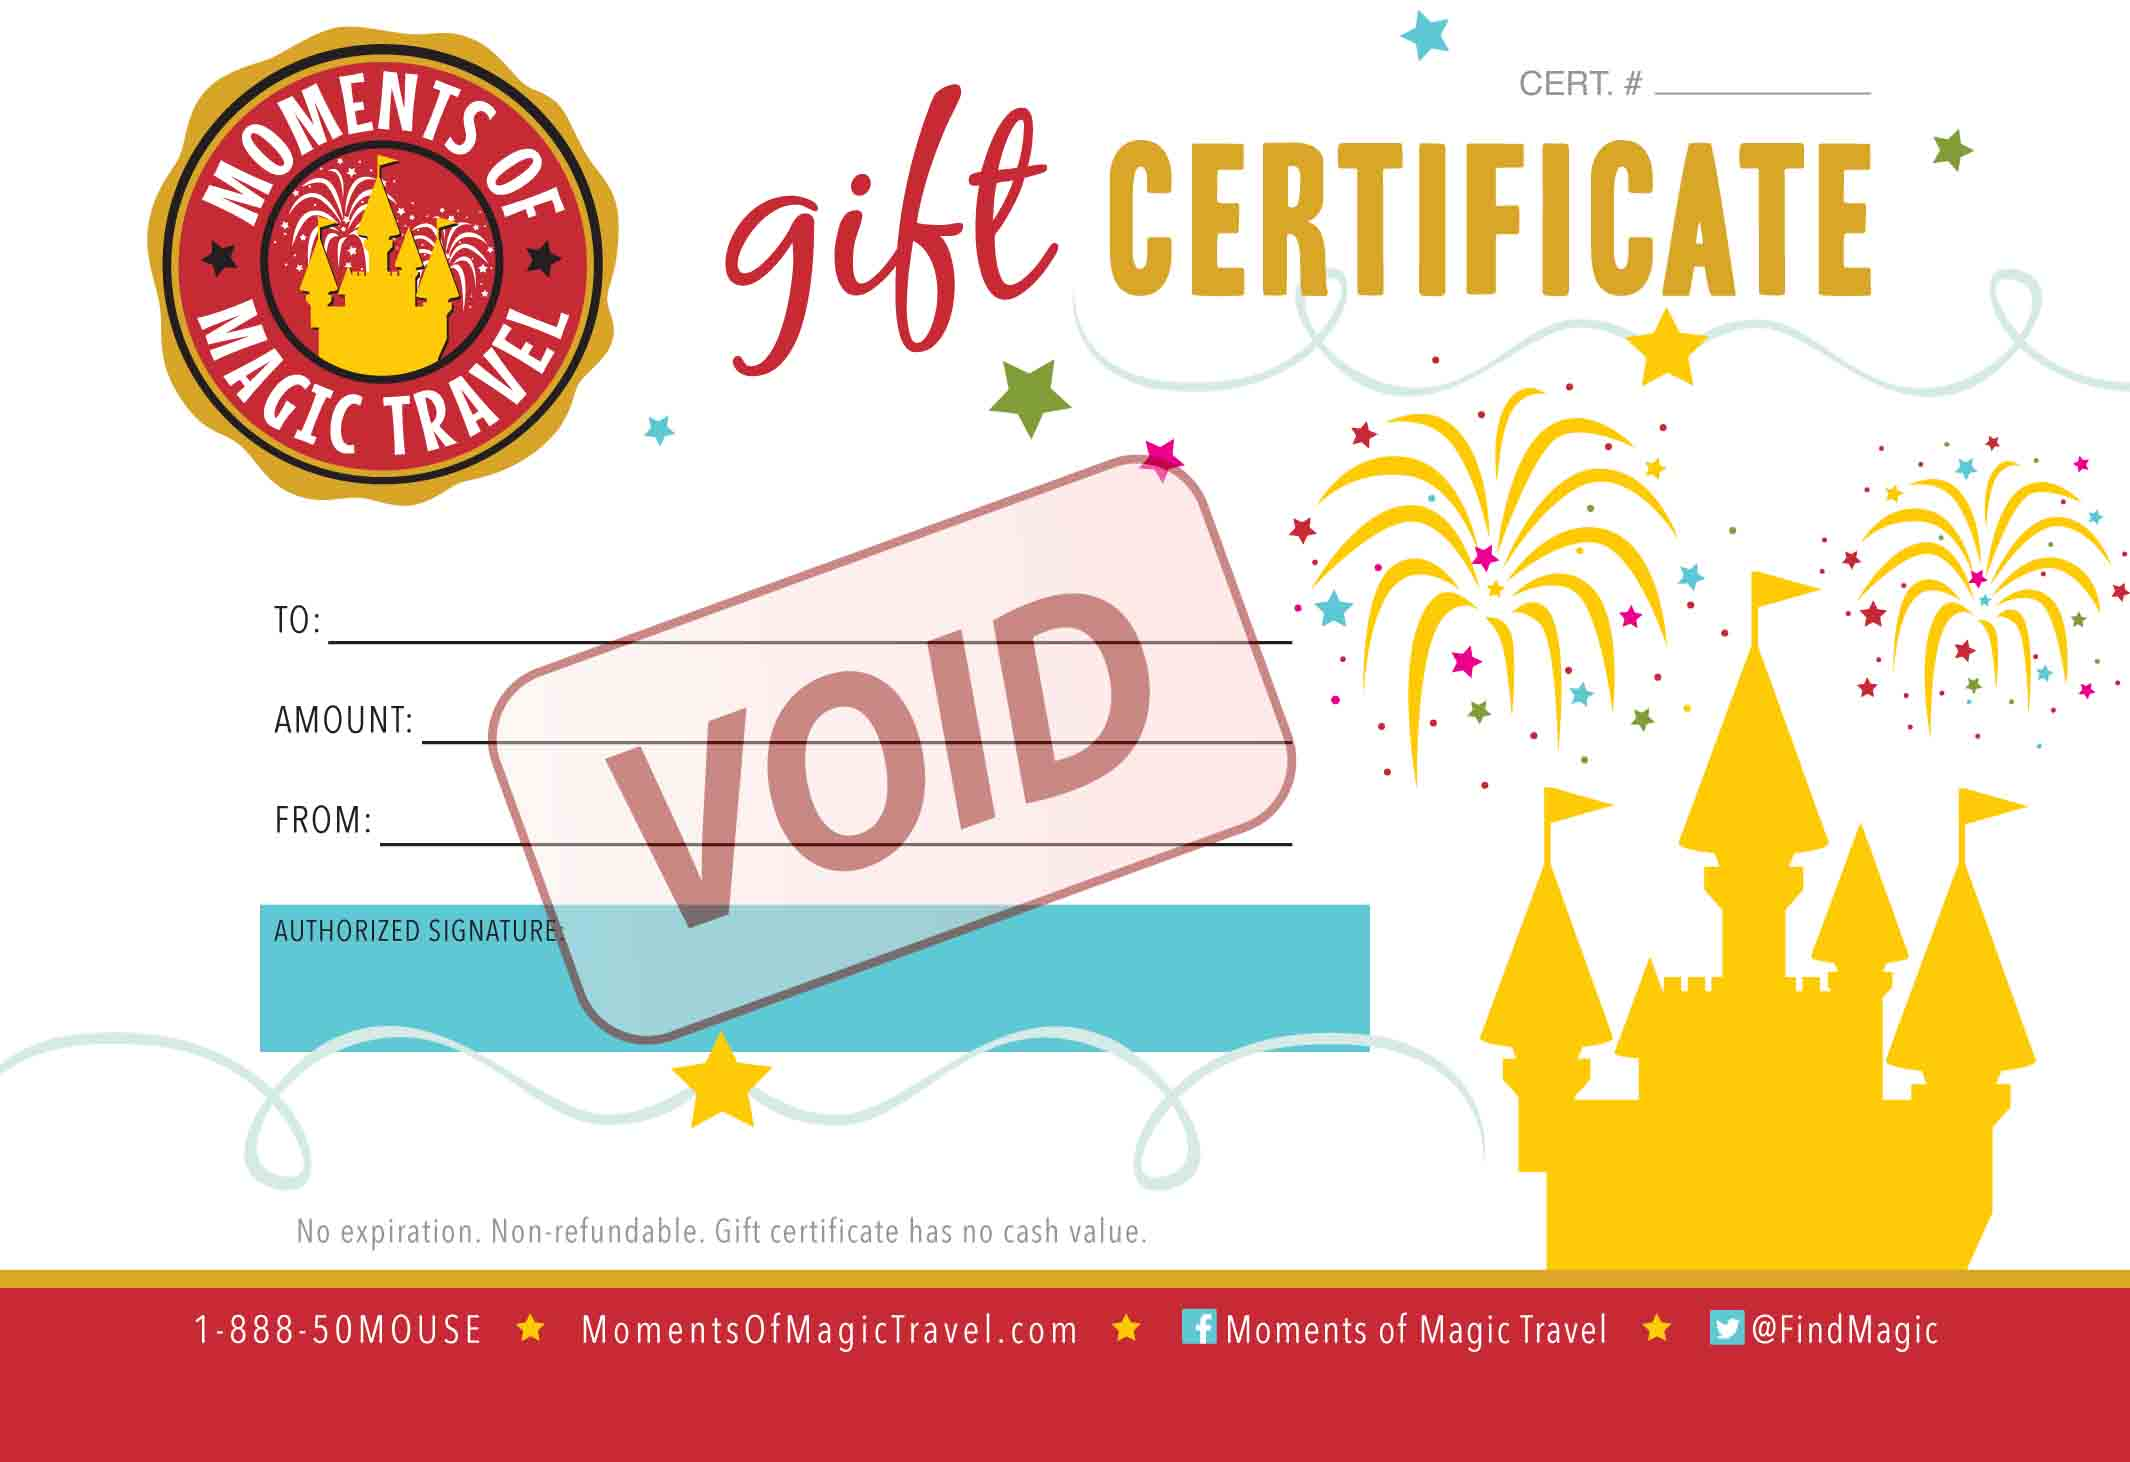 Moments of magic travel authorized disney vacation planner giftcertificatesample yadclub Choice Image